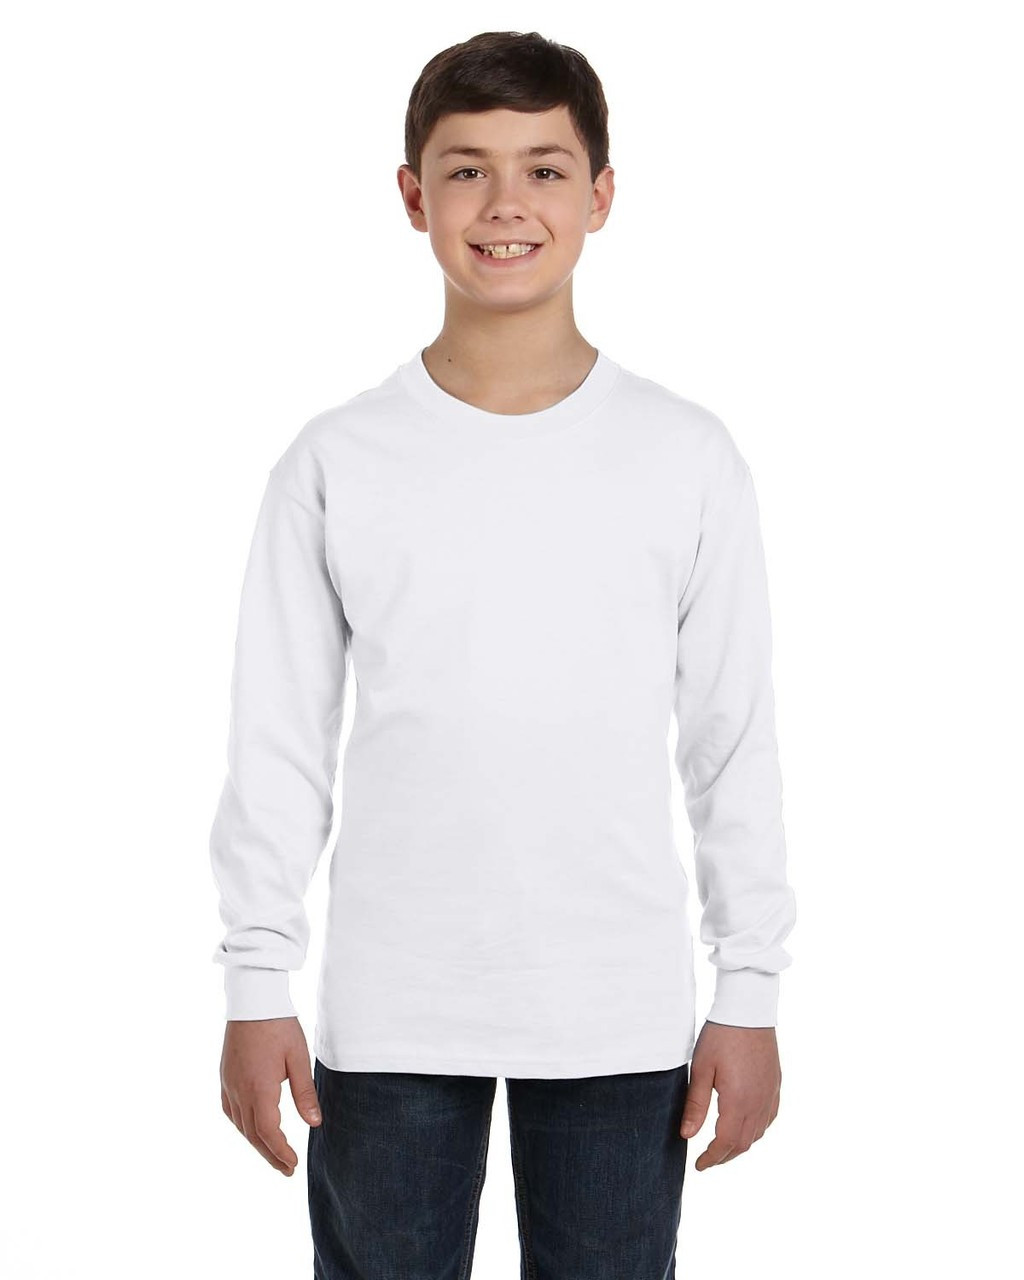 60536a7960c White G540B Gildan Heavy Cotton Youth Long Sleeve T-Shirt